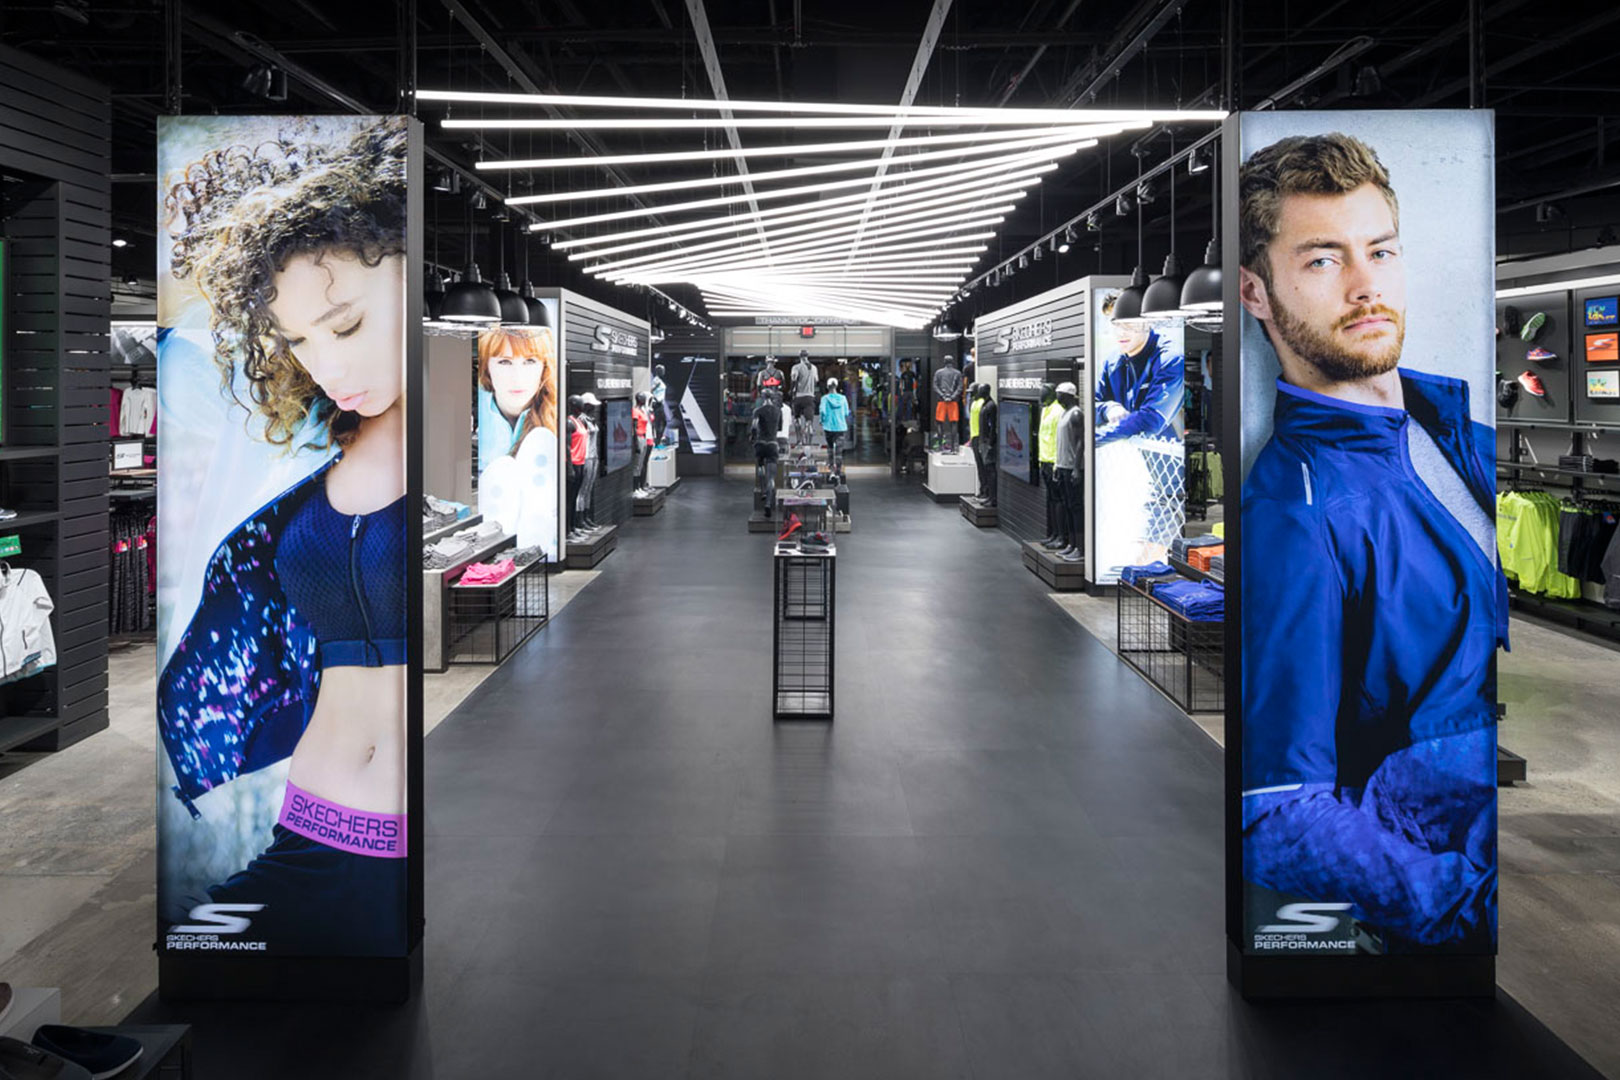 Skechers athletic apparel displays down the aisle